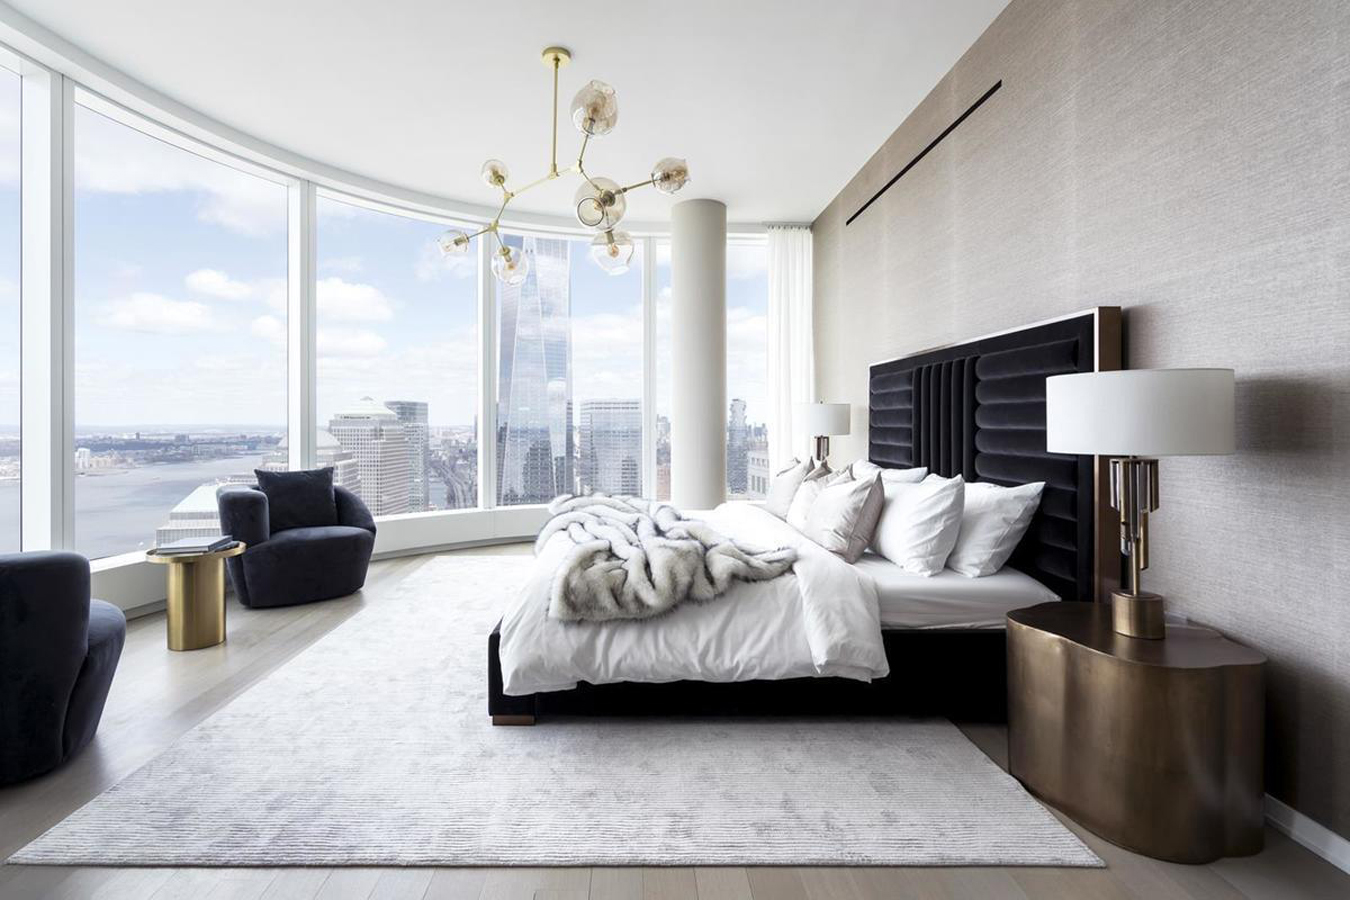 50 West on 50 West Street is a skyscraper, with architecture by Helmut Jalan, now also renting unsold residences. This residential building offers the best a home could offer, with its idyllic exterior and contemporary, meticulously-detailed interiors imagined by Thomas Juul-Hansen.  All homes feature oversized windows framing unparalleled views of the city and of the Manhattan skyline, expansive and generous floor plans and open kitchens. The floor-to-ceiling curved glass windows allow the homes to be airy and lit with natural light. A wide and carefully-curated amenities package is to be enjoyed by the residents of this landscaped plaza.  Amenities include a pet-friendly environment, a fully-equipped fitness center, a Water Club, doorman and concierge services, a bike room, a media doom, a swimming pool, and a children's playroom along with a package room. Alongside this, the tower enjoys a lively neighborhood, within the radius of subways and Financial District.   CITY REALTY ARTICLE   The shimmering sentinel at 50 West Street is a major addition to Lower Manhattan's celebrated and changing skyline. The 778-foot-high tower has a roof slanted upwards toward the pinnacle of One World Trade Center, a few blocks to the north. The Financial District building has 191 condominium apartments and was developed by  Time Equities . The 64-story structure, with floor-to-ceiling windows, was designed by  Helmut Jahn .  Four floors of the tower are devoted to amenities that include a fitness center and a 64th floor outdoor entertaining space with far-reaching views of New York and beyond. The location is one block from the 1, R/W and 4/5 subway lines and is in close proximity to attractions such as Battery Park and the  Hudson River Promenade .   CONTACT US FOR MORE INFORMATION ABOUT THIS AND OTHER NEW DEVELOPMENTS IN NYC, BROOKLYN & QUEENS!